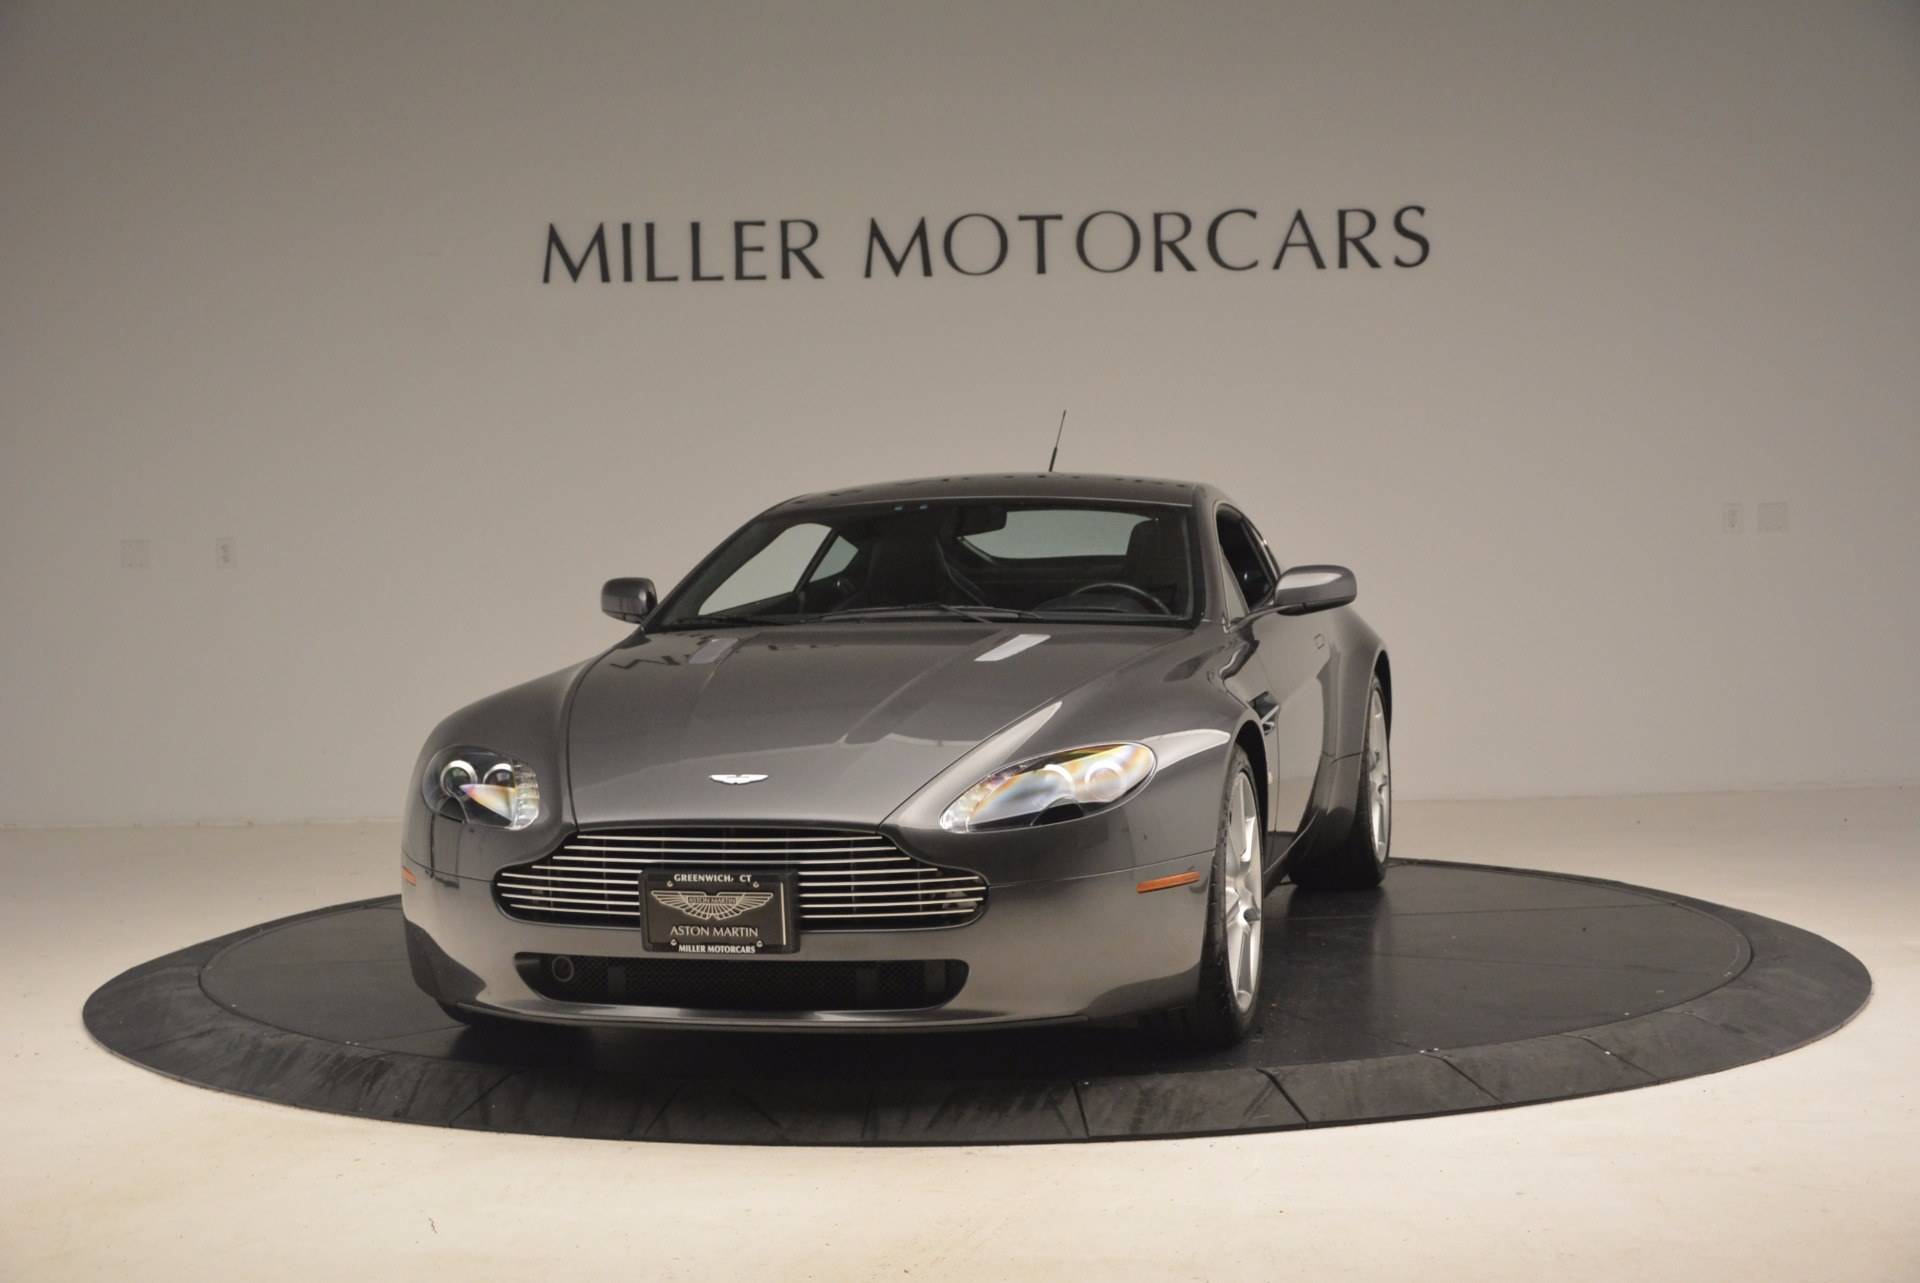 Used 2006 Aston Martin V8 Vantage Coupe for sale Sold at Maserati of Greenwich in Greenwich CT 06830 1